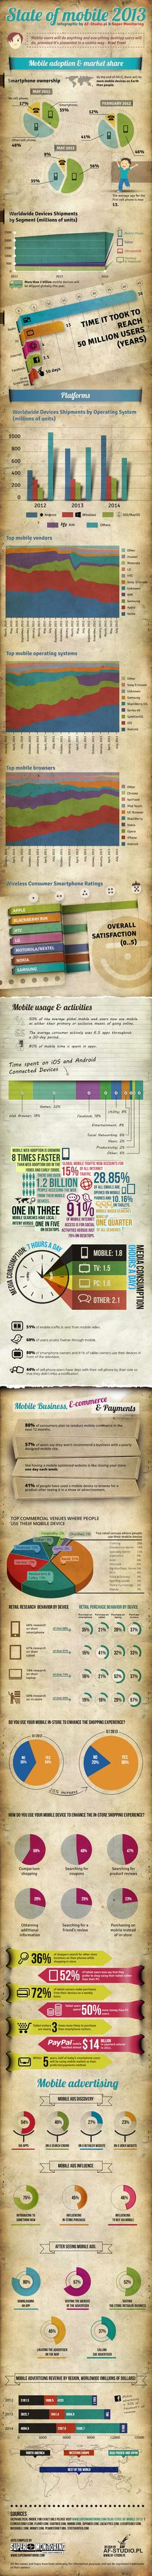 Mobiles Internet - state of mobile 2013 (Infografik) Mobile Marketing, Mobile Advertising, Marketing Digital, Inbound Marketing, Internet Marketing, Online Marketing, Social Media Marketing, Green Marketing, Content Marketing